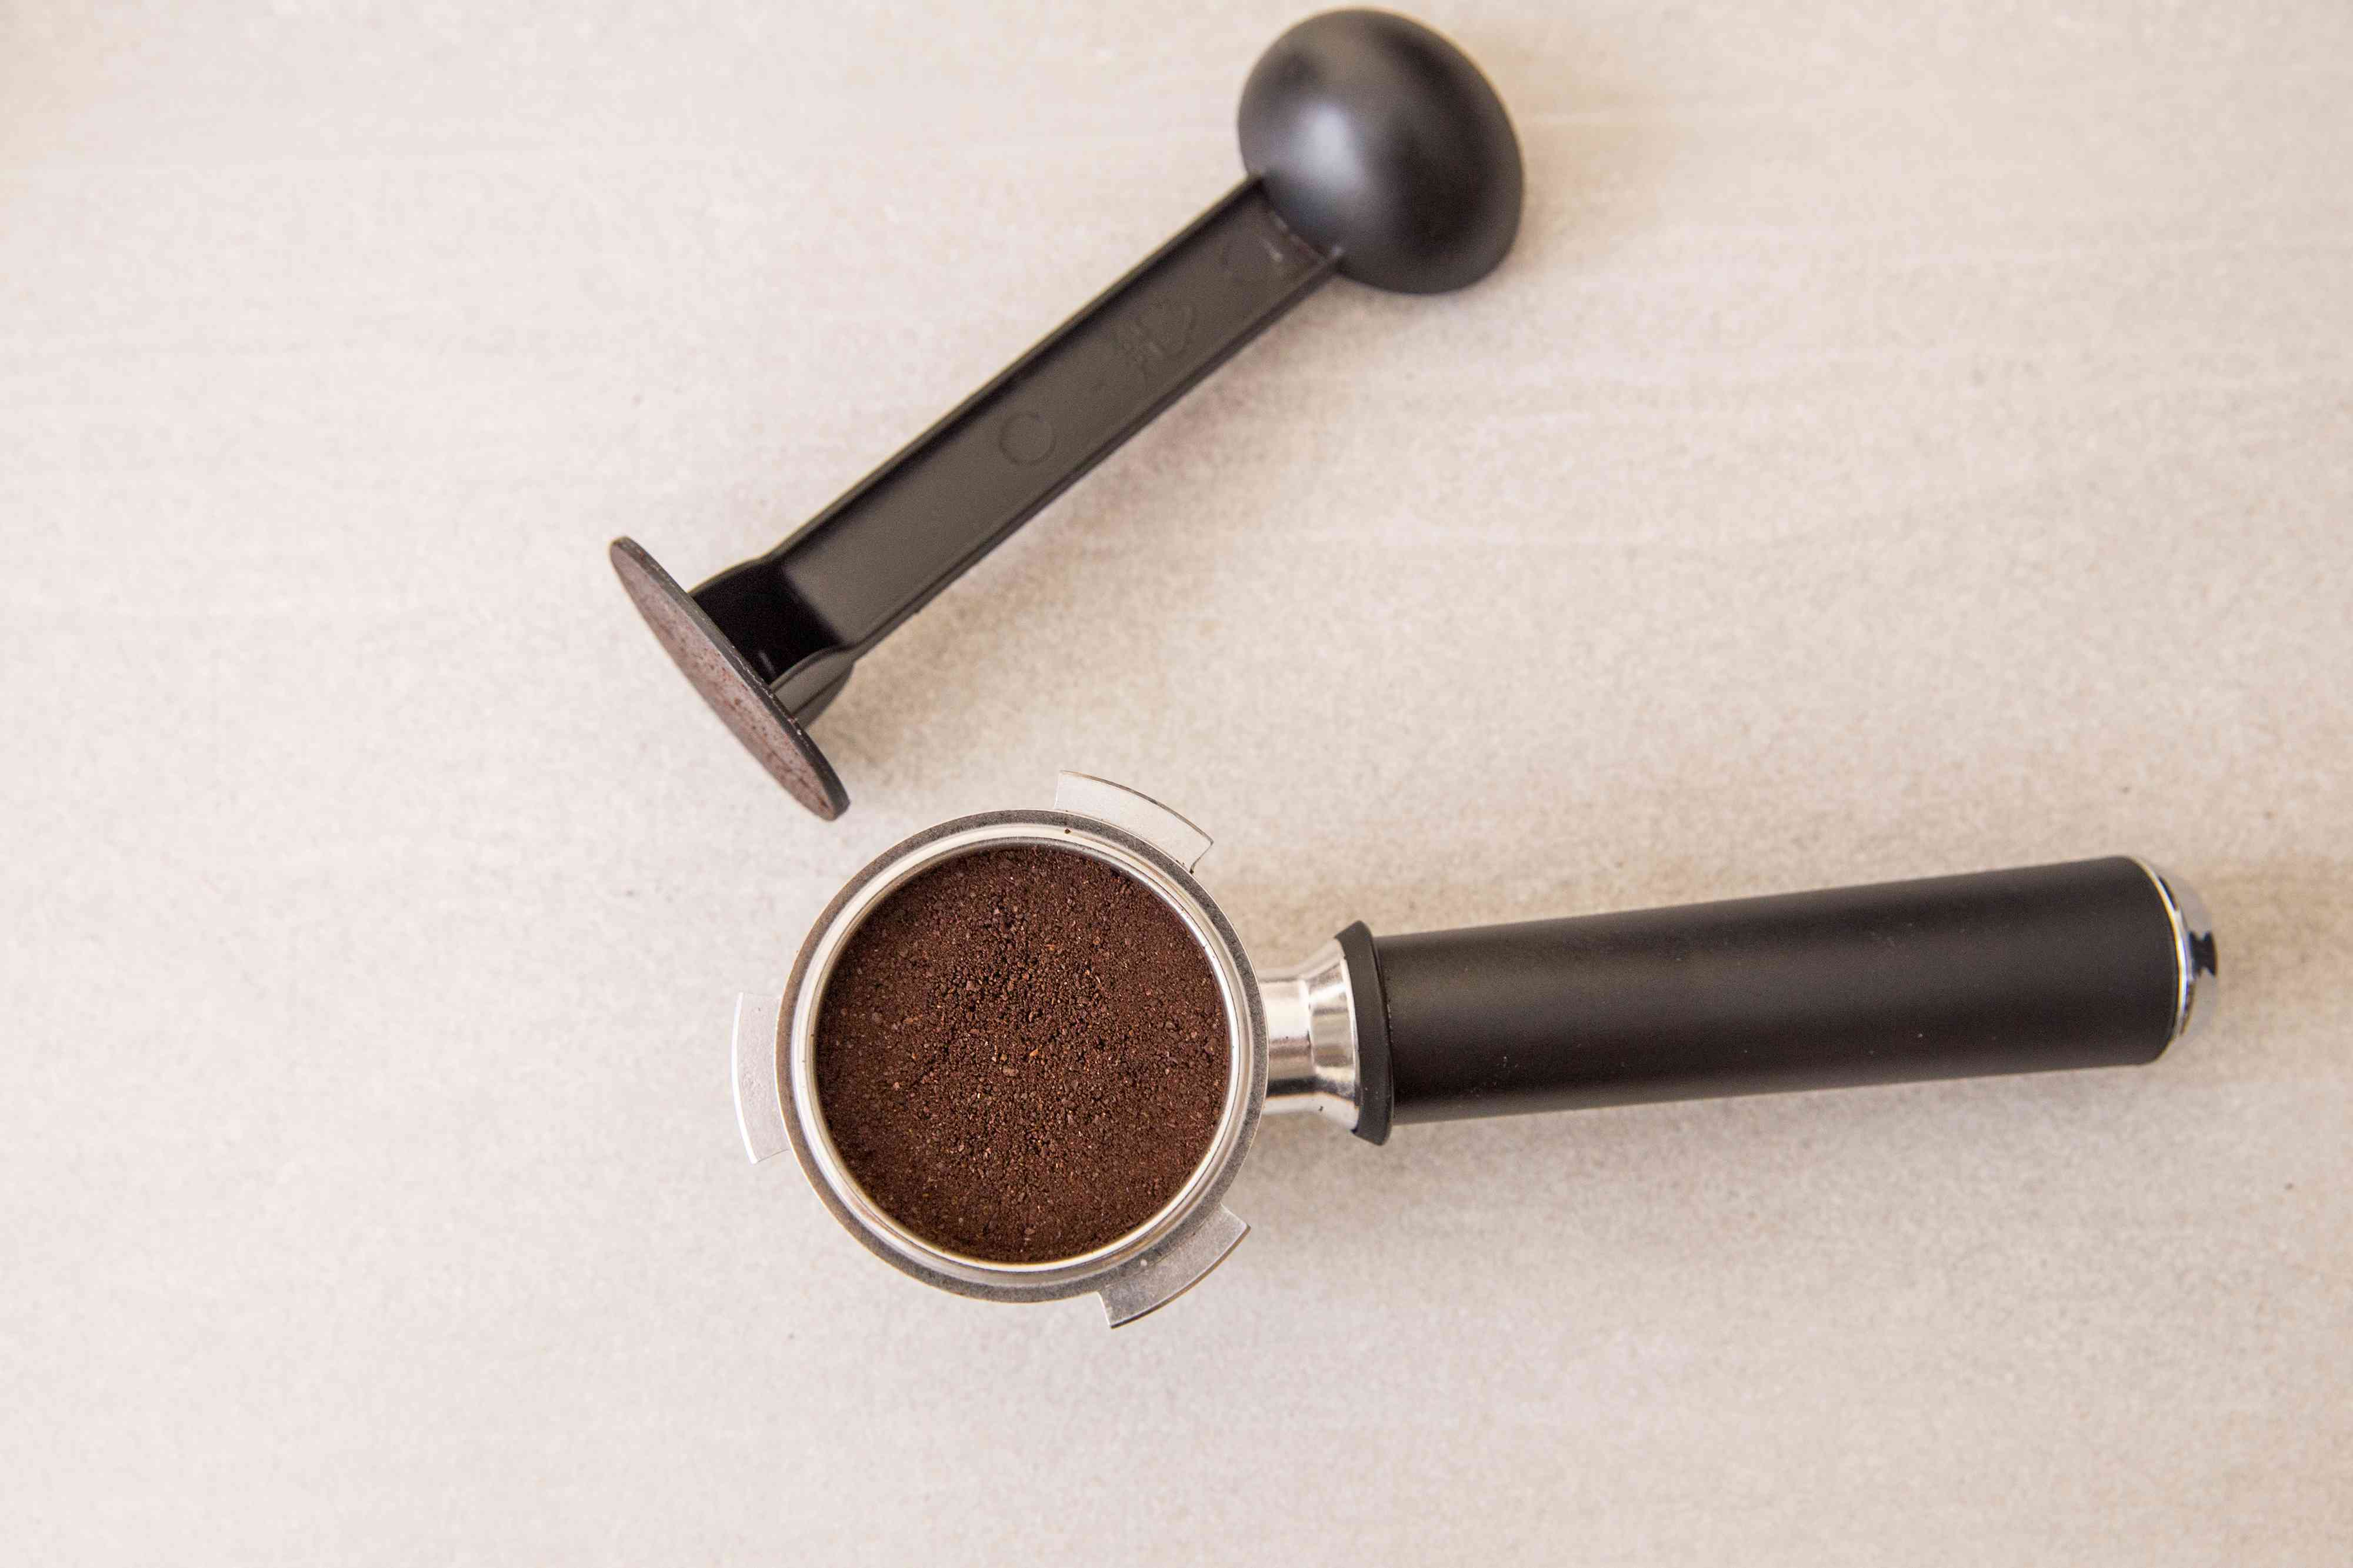 Tamp (press) the coffee down using a tamper